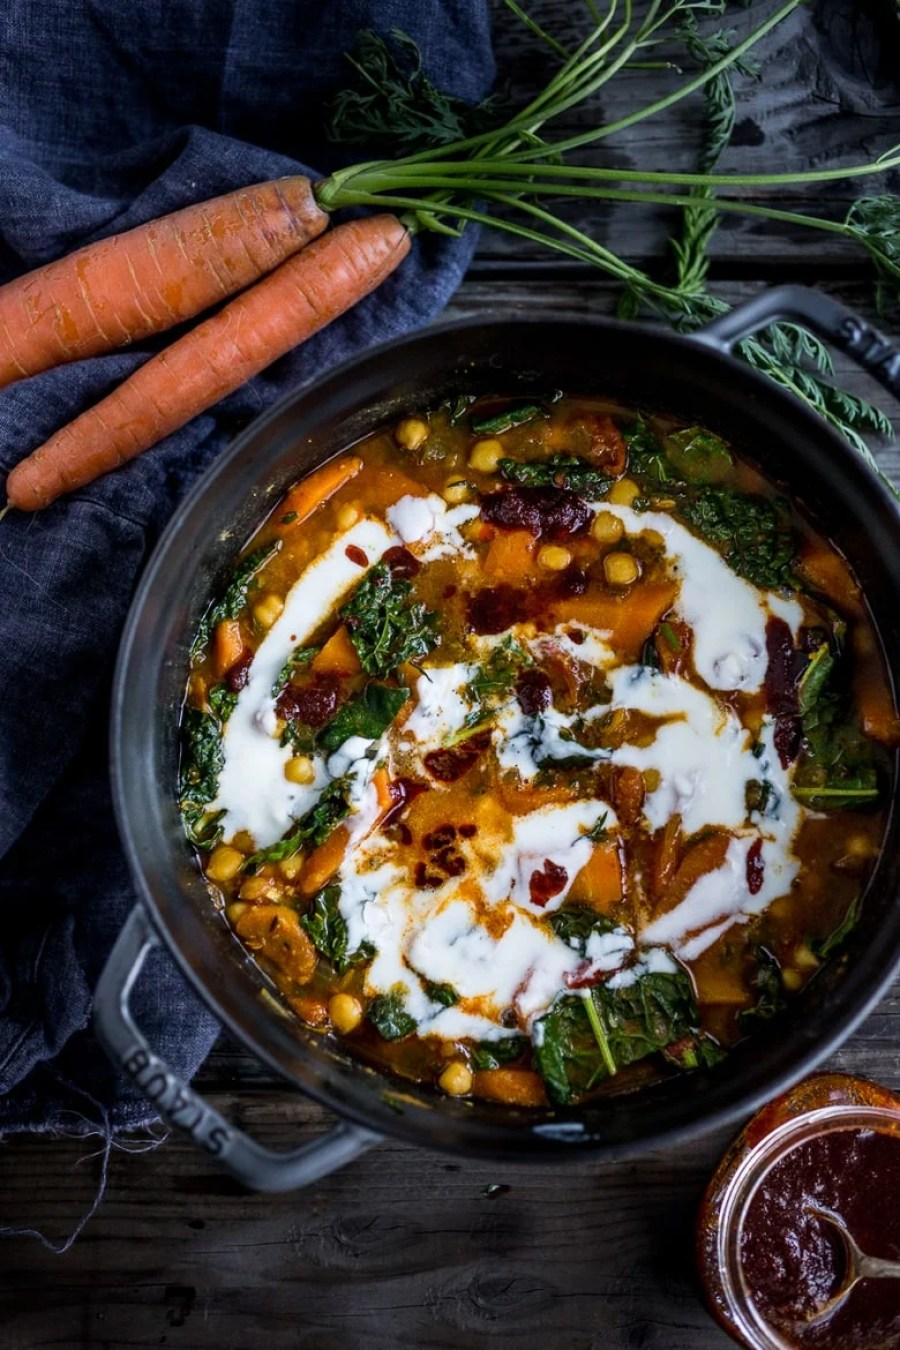 10 Simple Powerful Turmeric Recipes to Heal, Sooth and Protect| Add fresh turmeric to soups and stews! Tunisian Chickpea Stew with Carrots, turmeric, harissa and Yogurt!